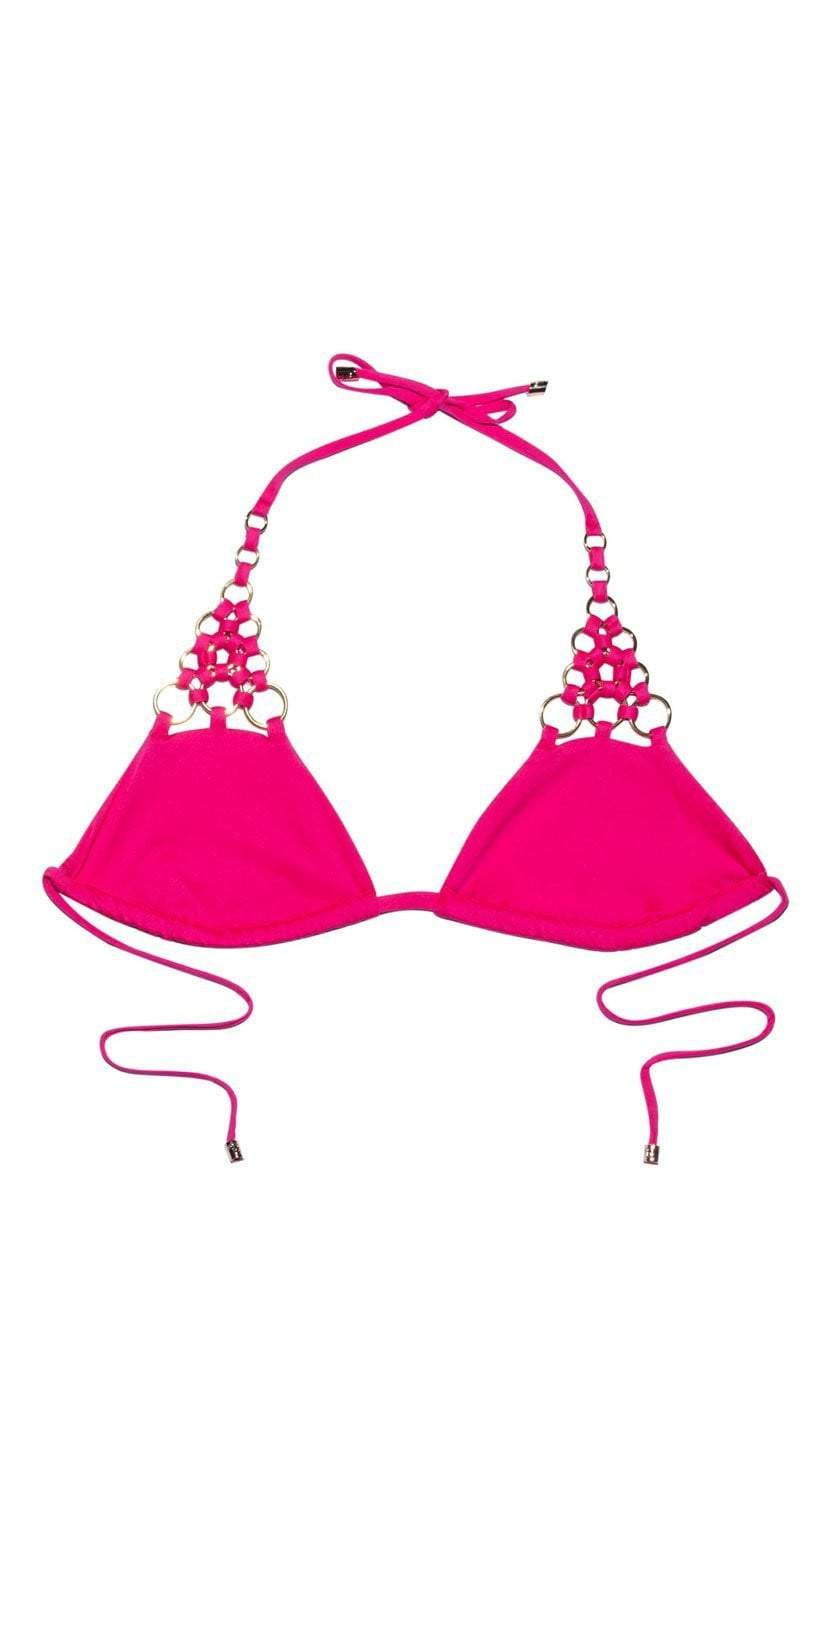 Beach Bunny Ireland Ring Tri Top In Pink B18127T2 BARB top only